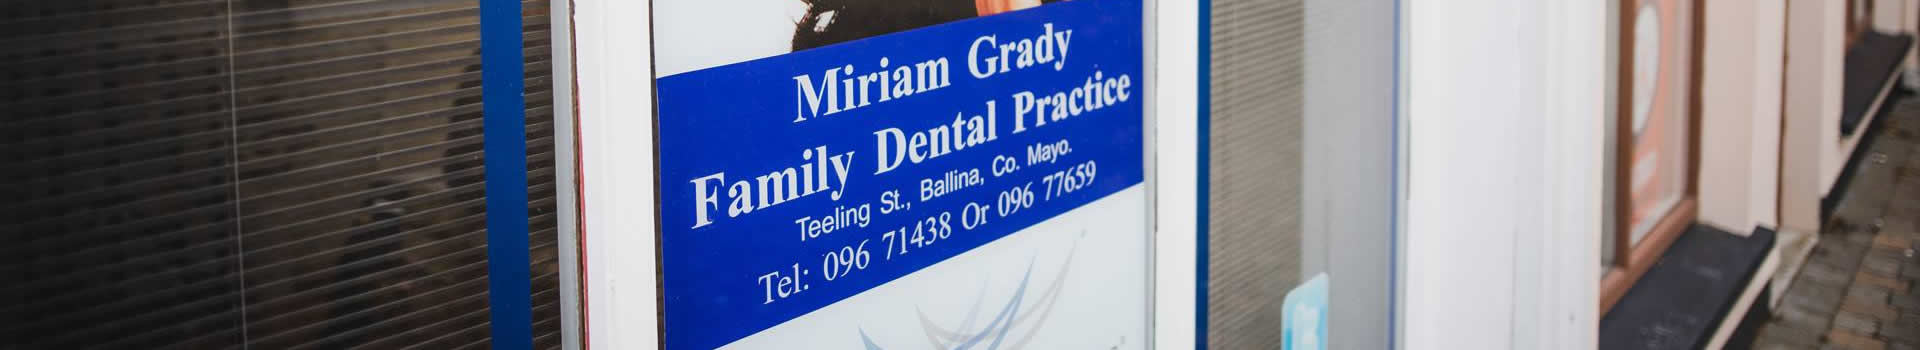 Pricing - Miriam Grady Dental Practice